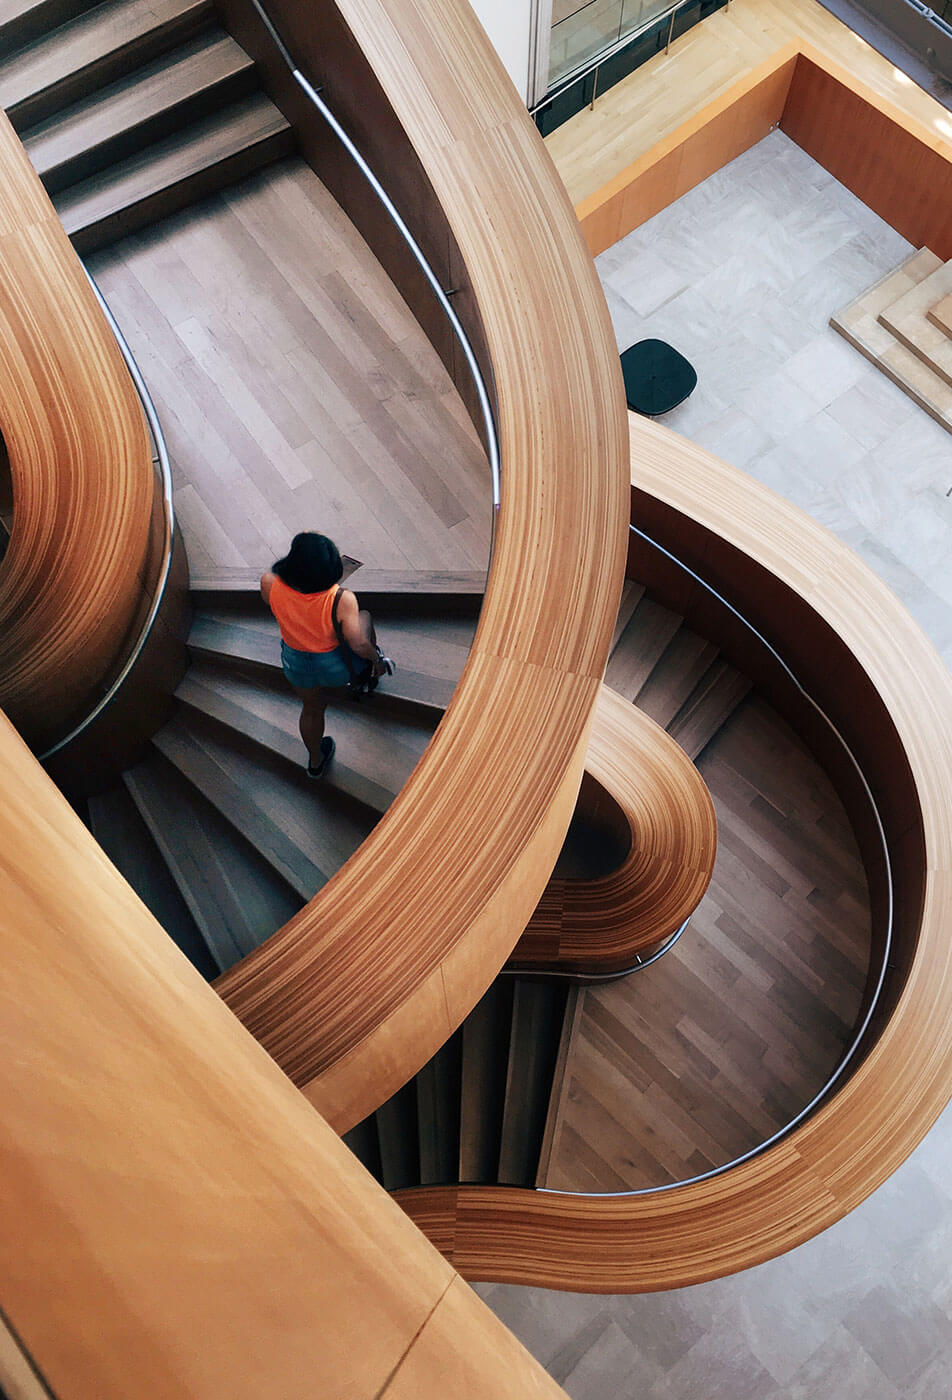 winding wooden staircase design and access